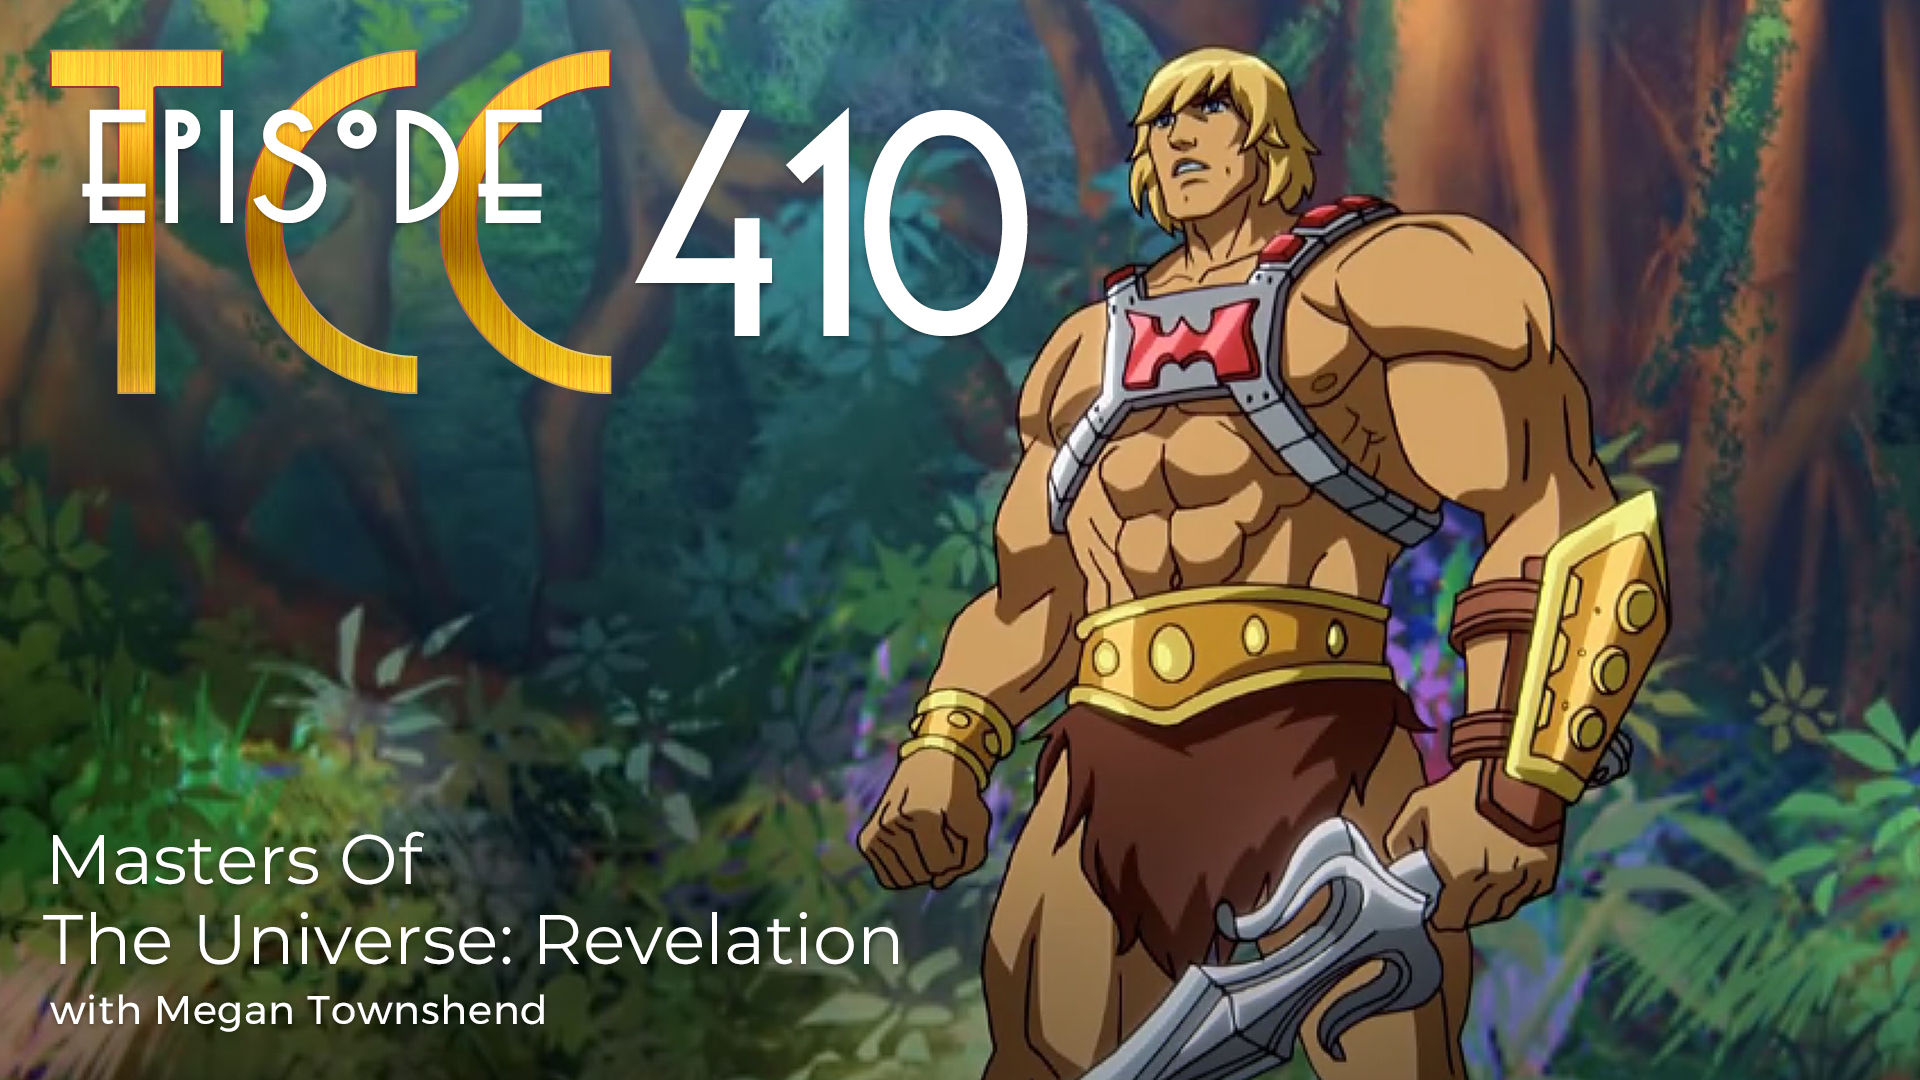 The Citadel Cafe 410: Masters Of The Universe, Revelation